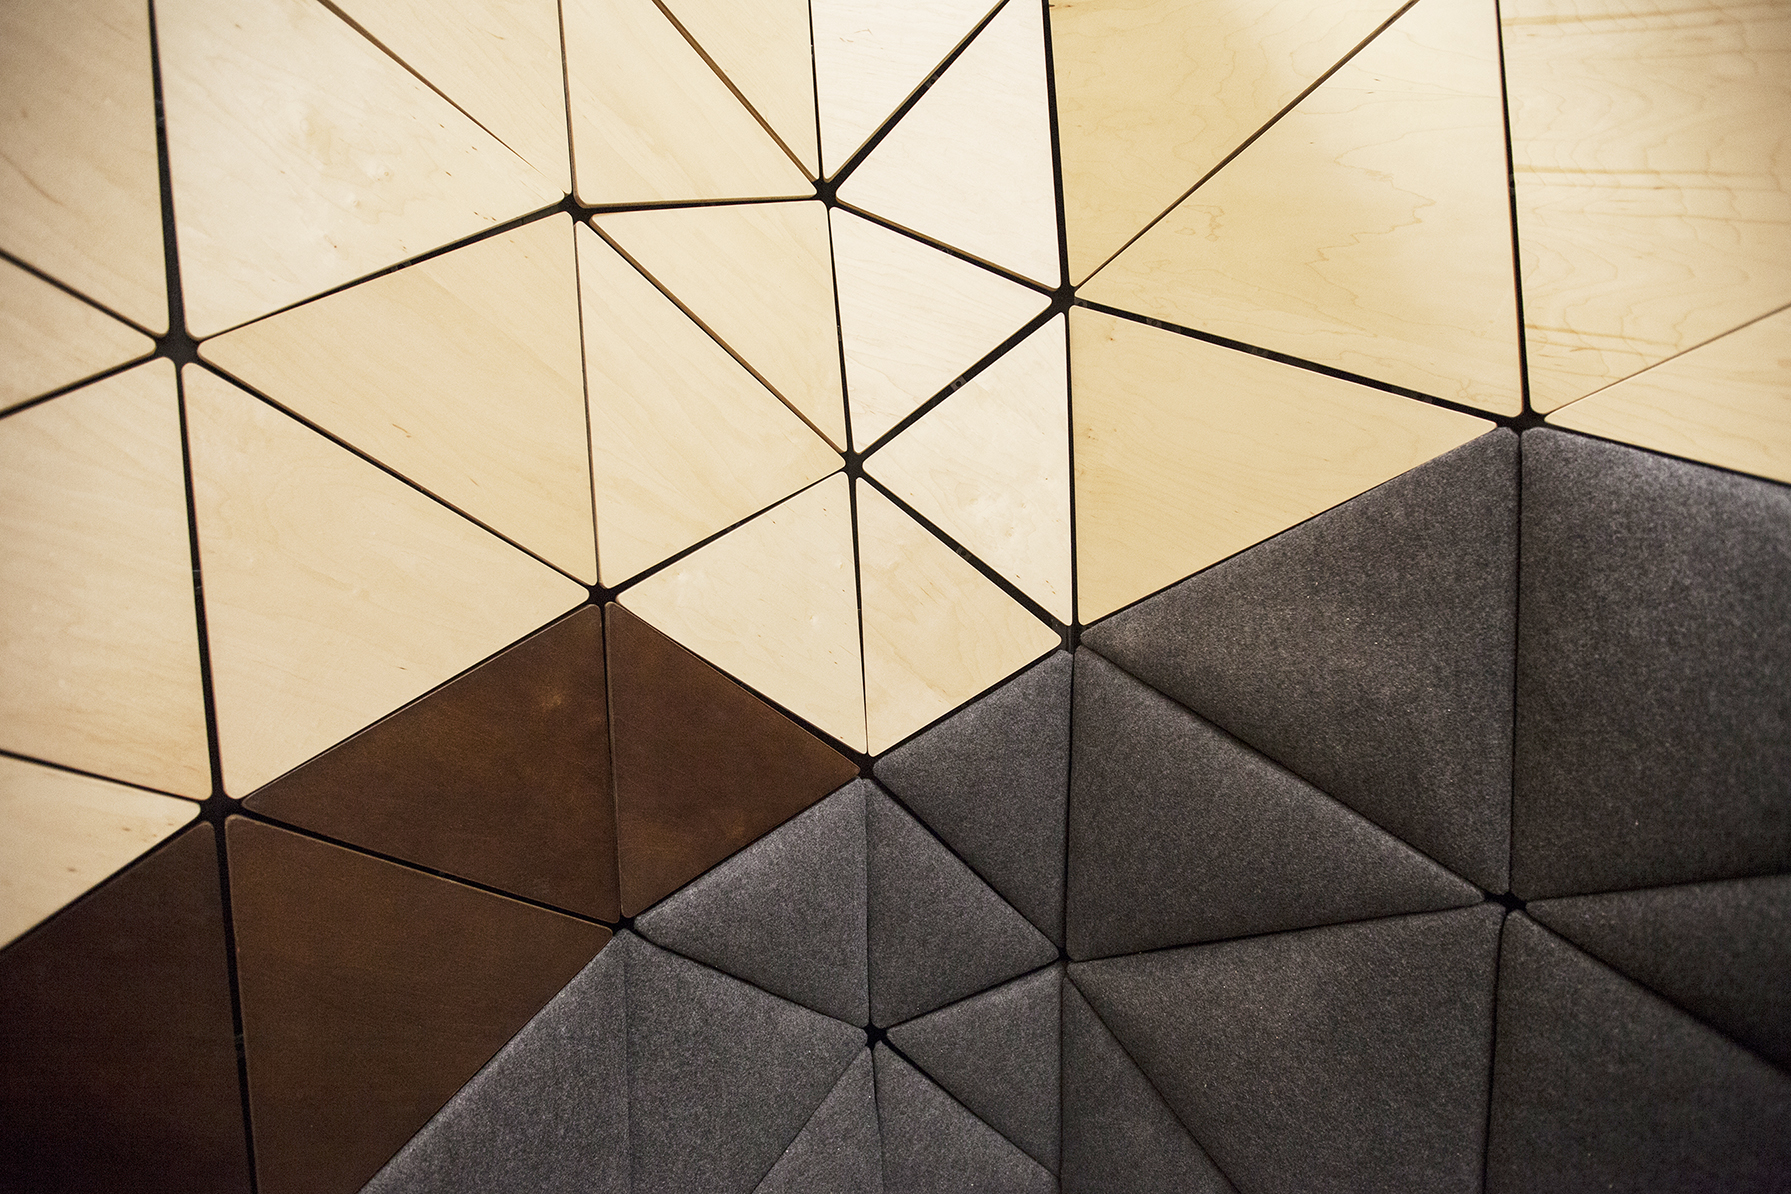 One container, an undulating wall form made of triangles. Dark and padded on the bottom, bright and warm on the top.